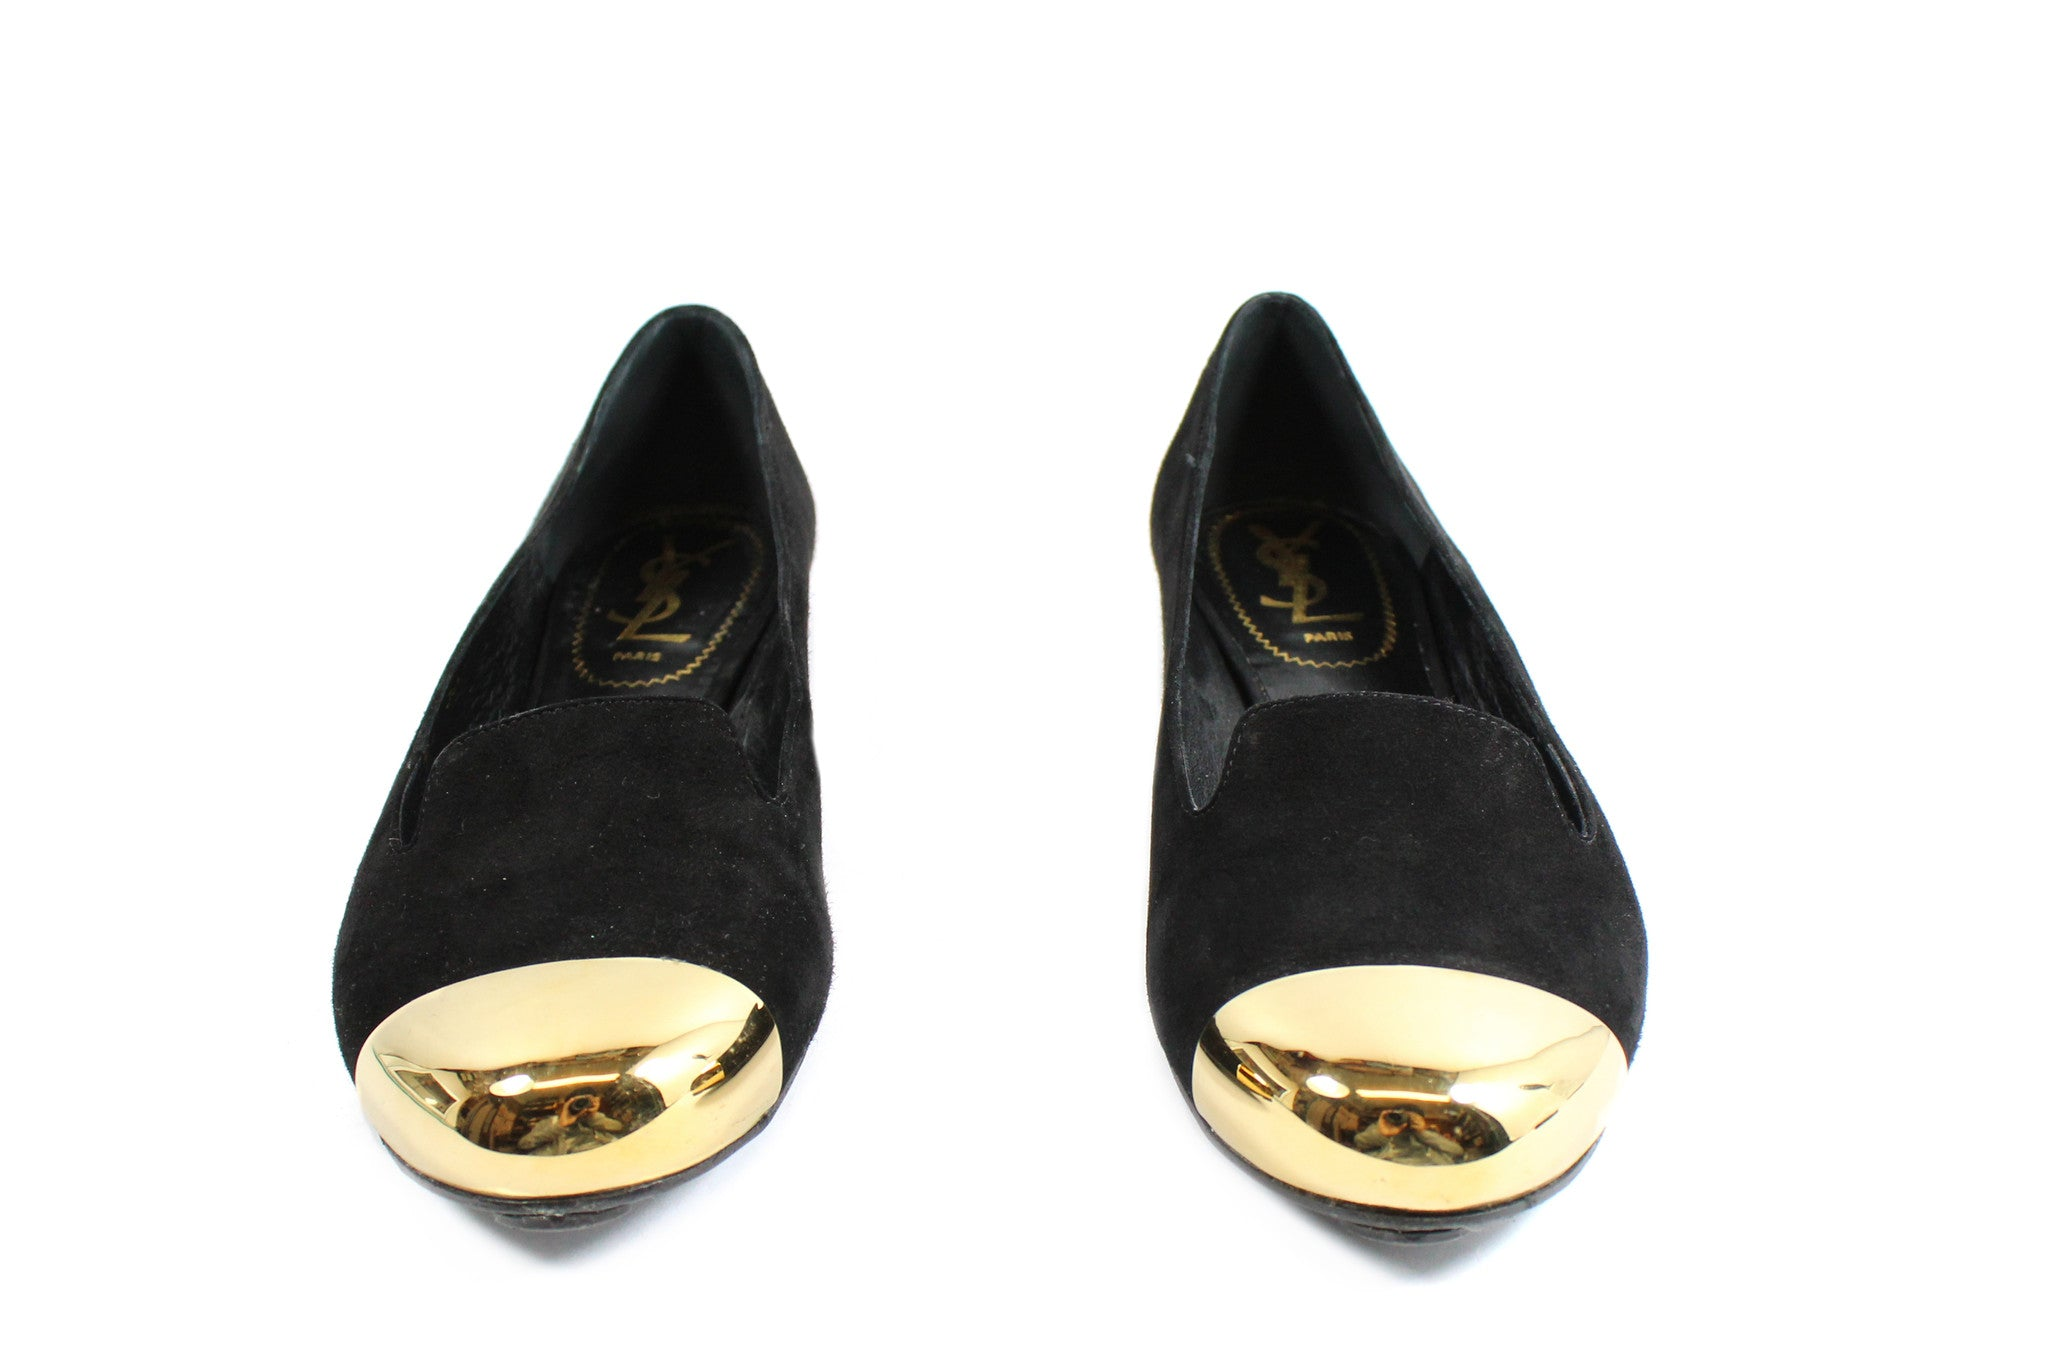 Yves Saint Laurent 'Evalyn' Suede Flats with Gold Cap Toe (Size 36.5) - Encore Consignment - 3